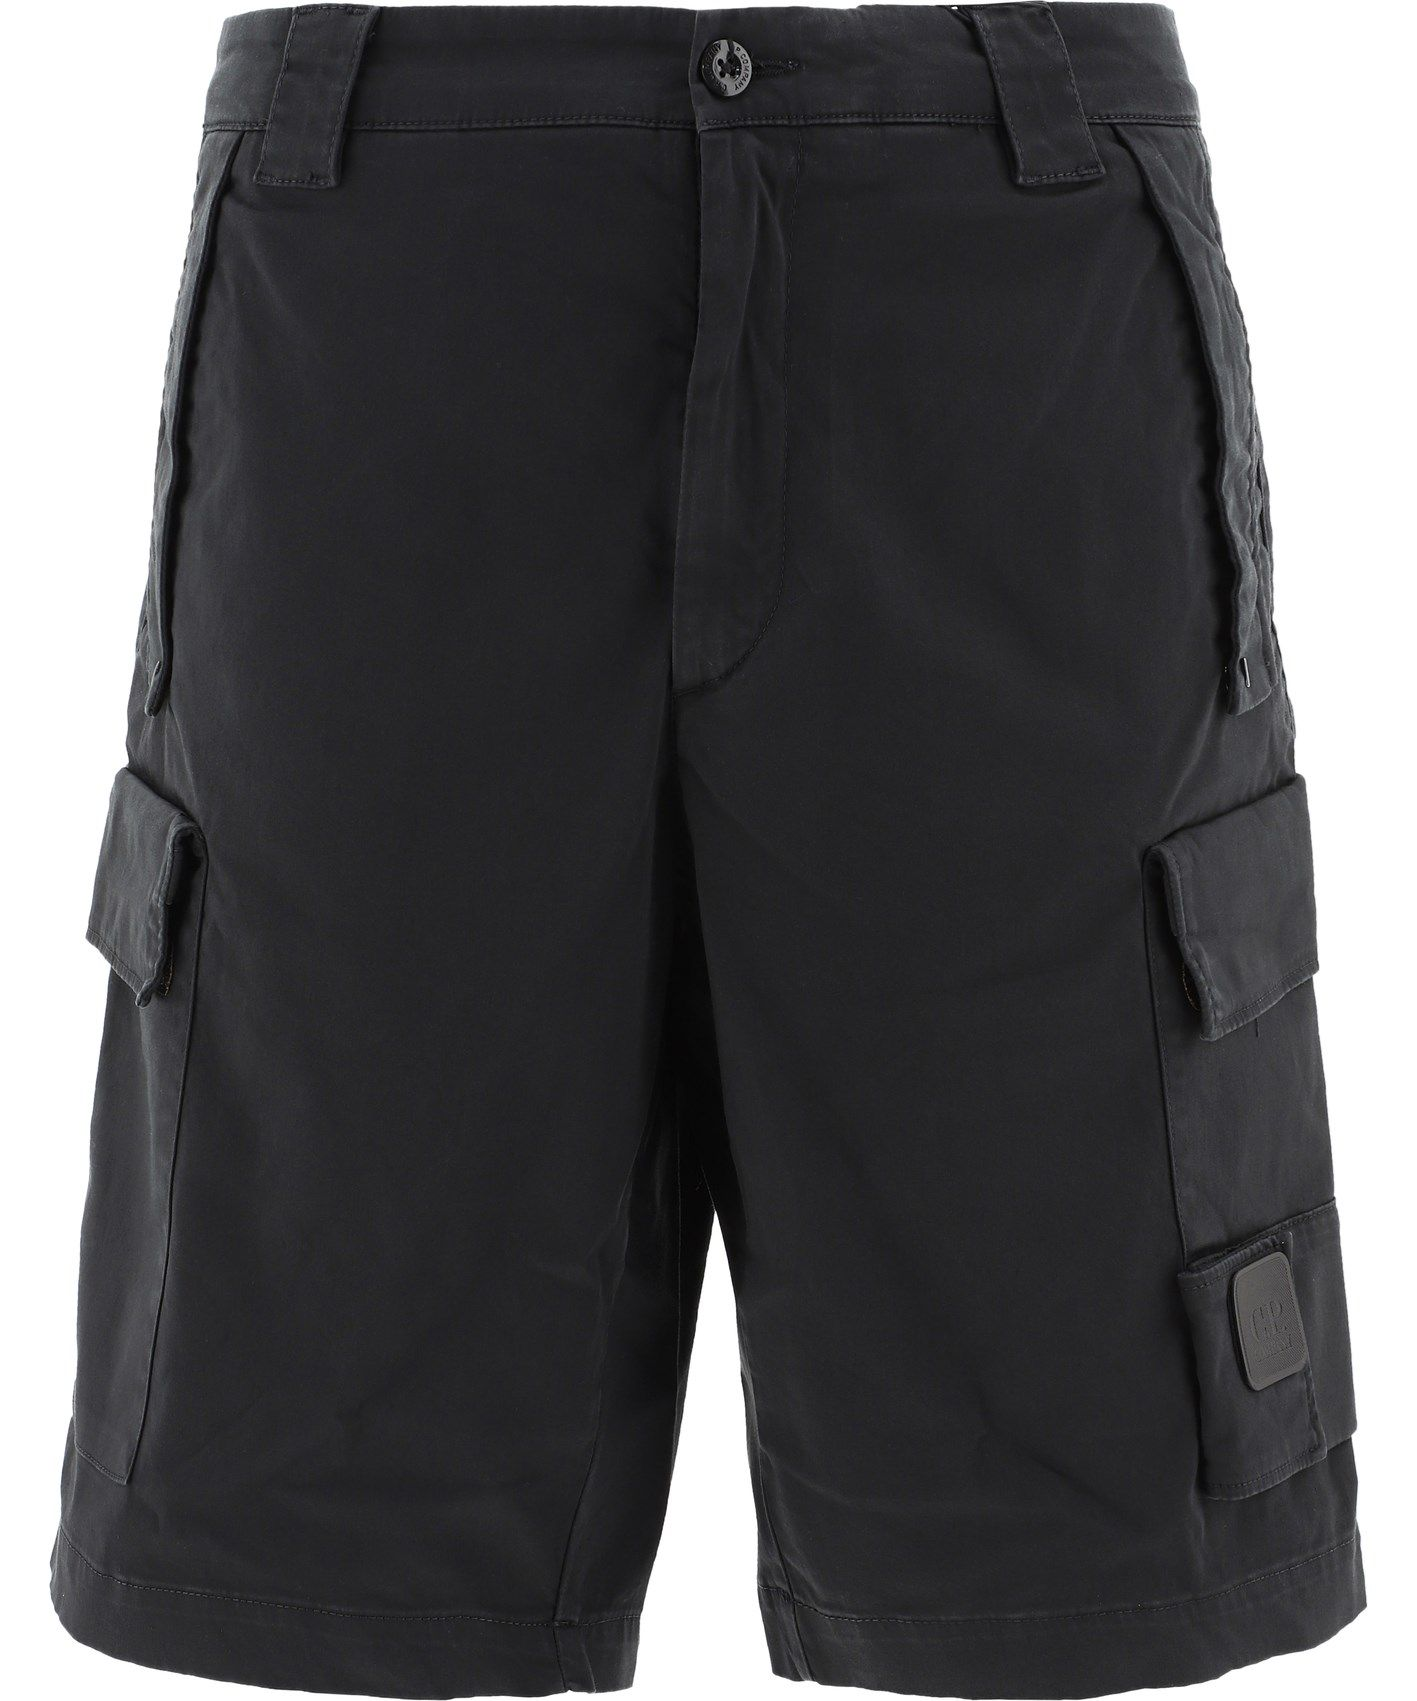 C.p. Company CP COMPANY MEN'S 10CMBE160A005694G999 BLACK OTHER MATERIALS SHORTS